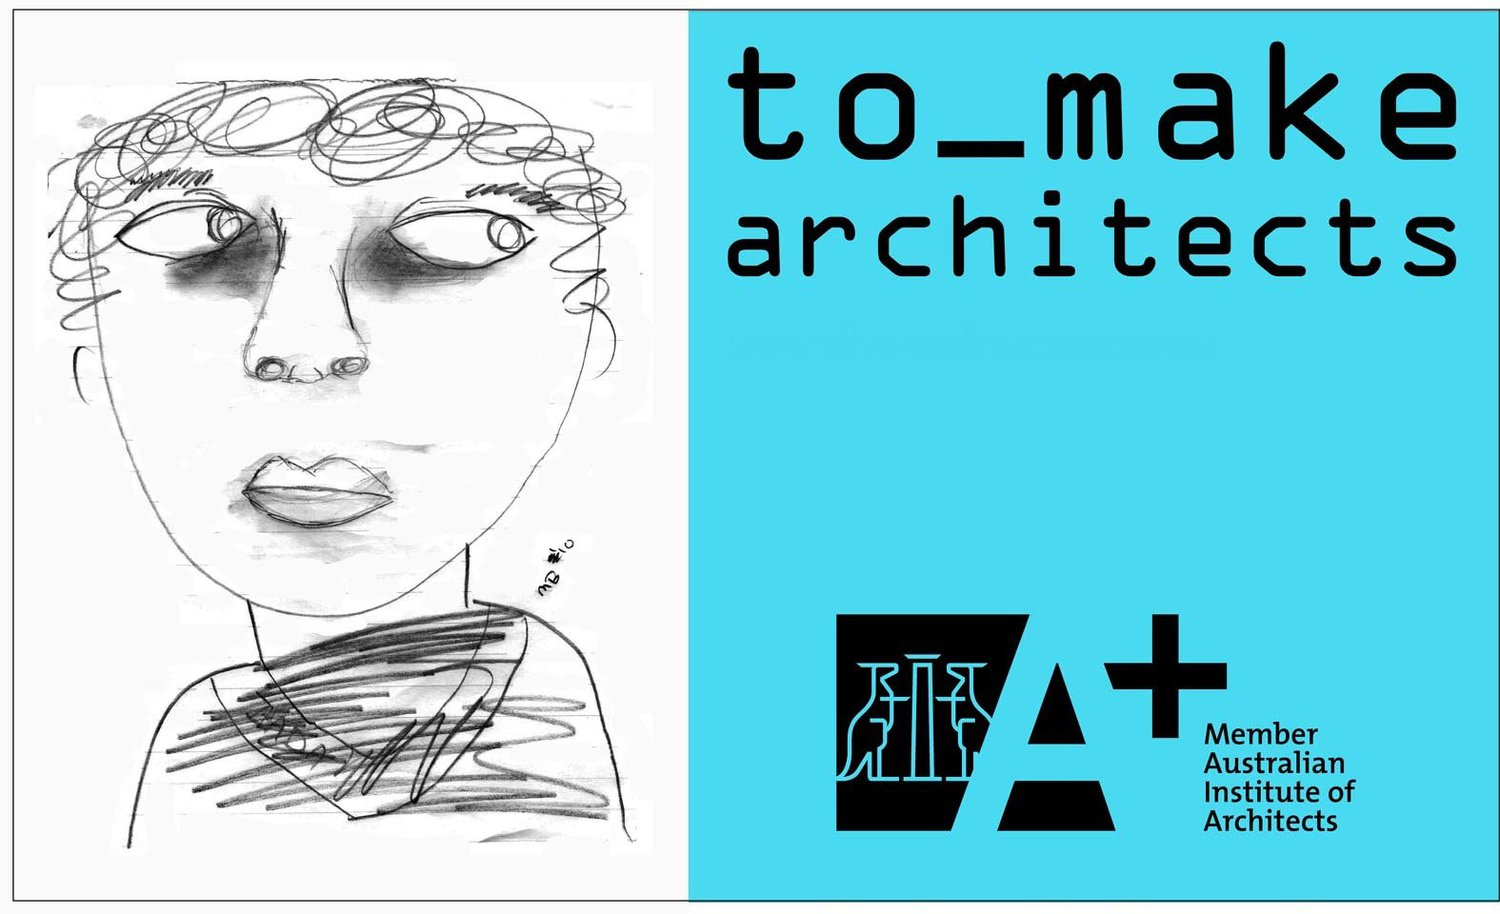 to_make architects